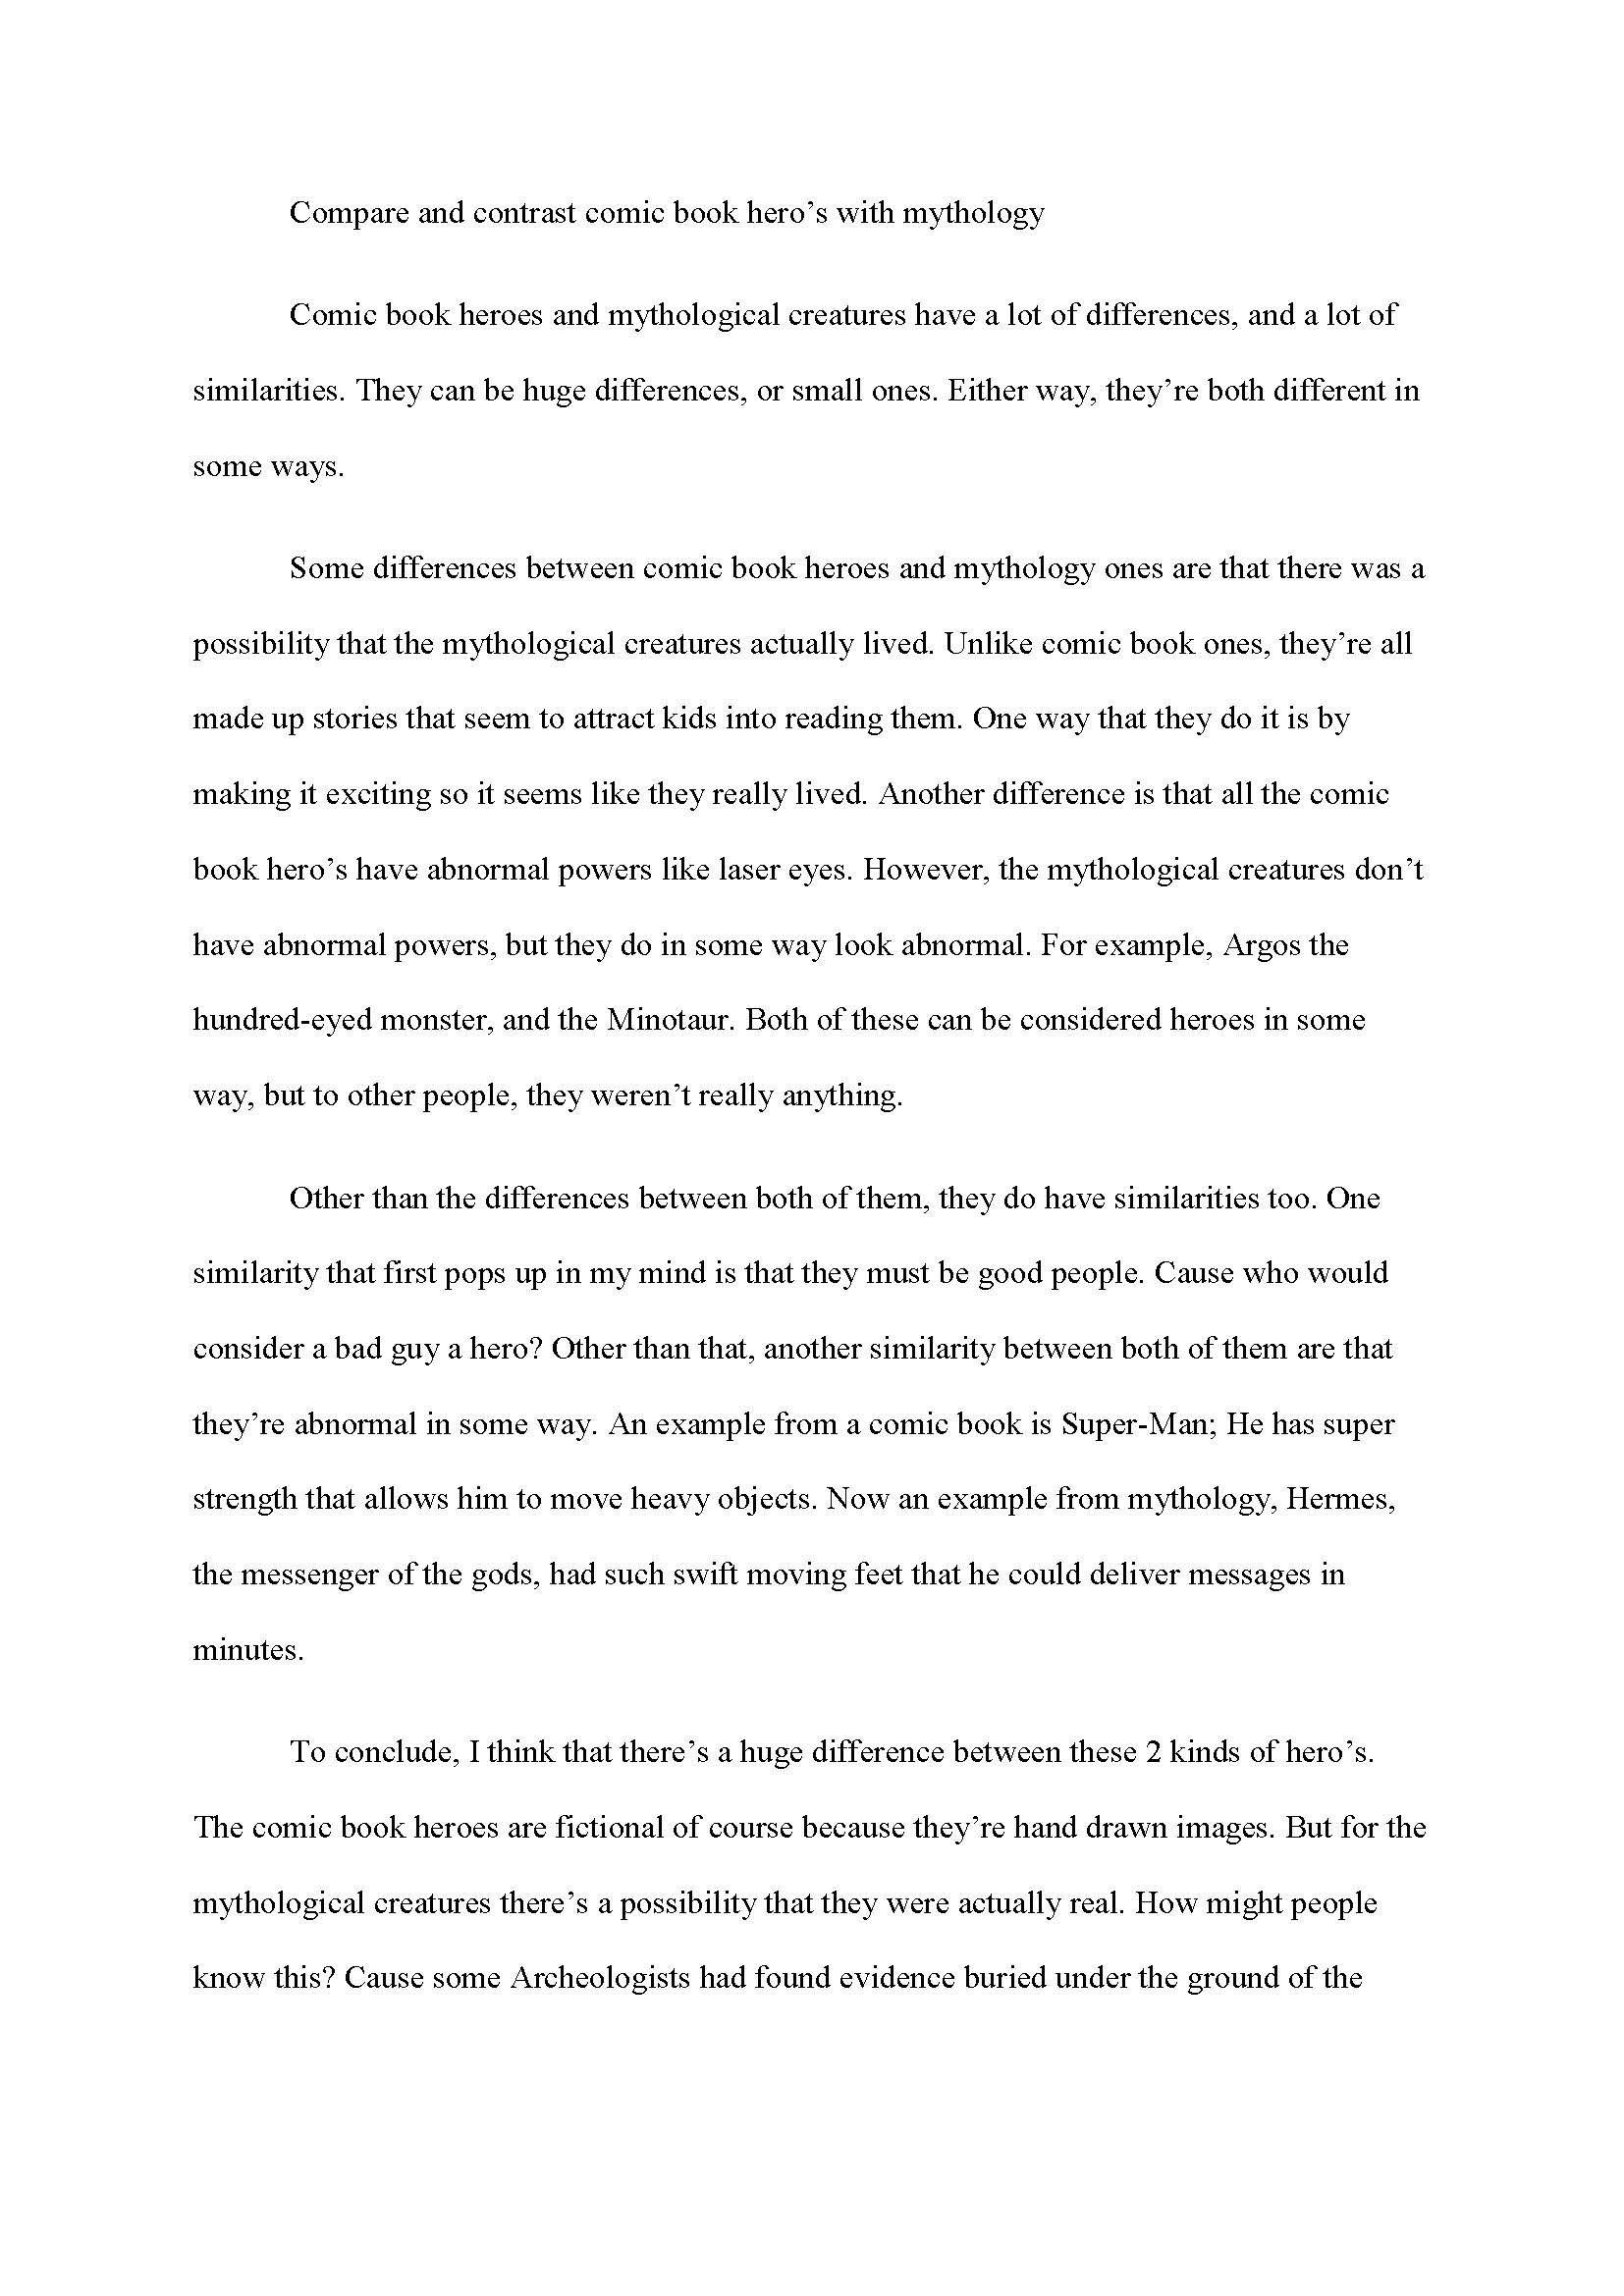 10 Unique Ideas For A Compare And Contrast Essay compare contrast essay outline example compare to examine two or 2021